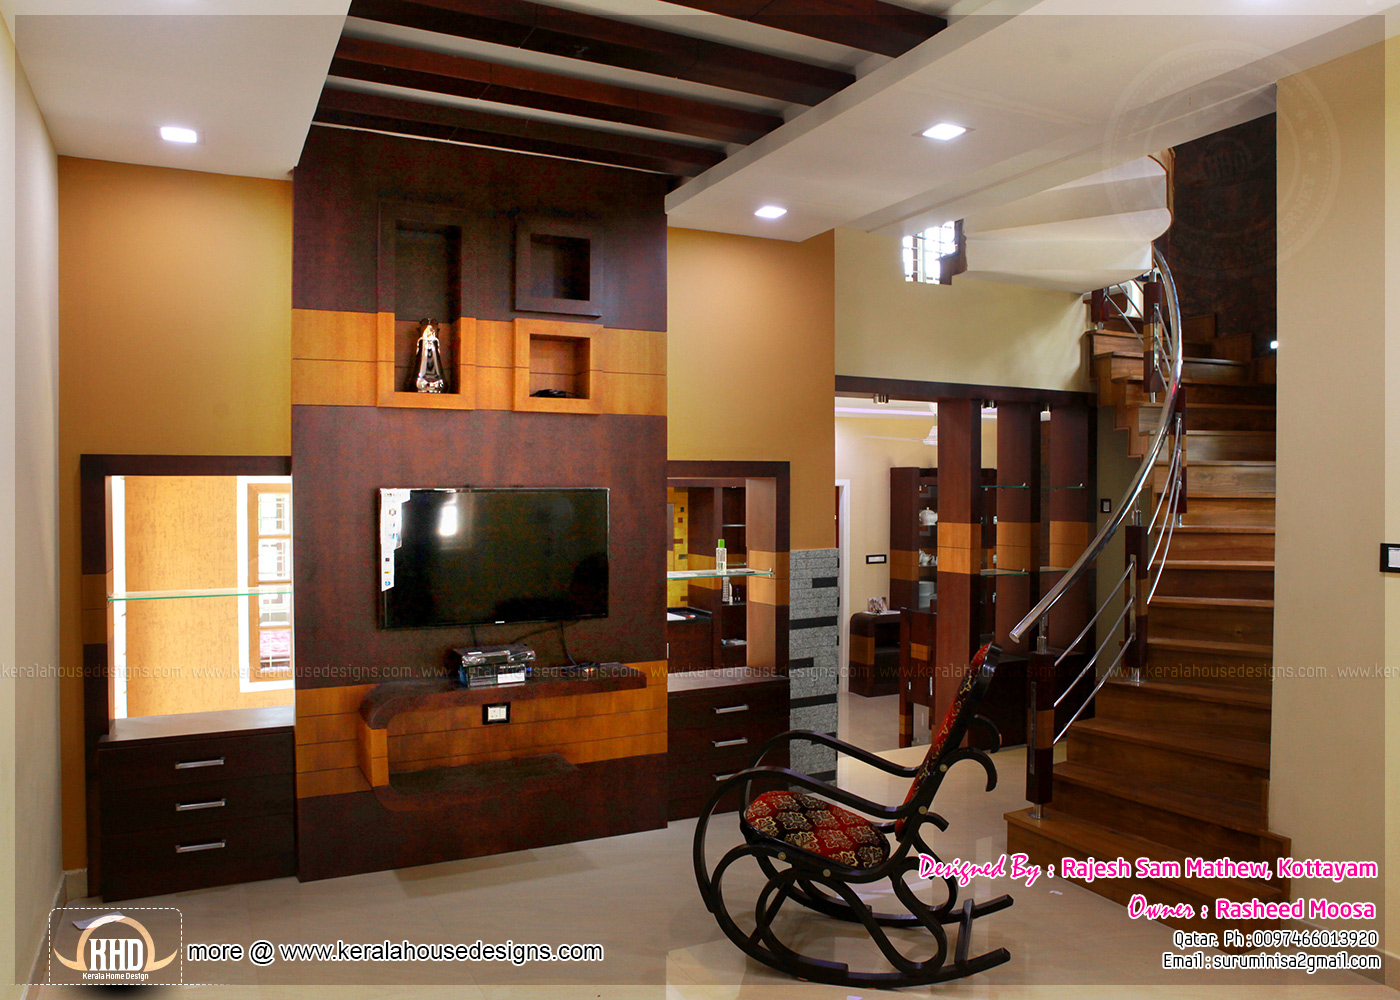 Kerala interior design with photos kerala home design for New house interior designs